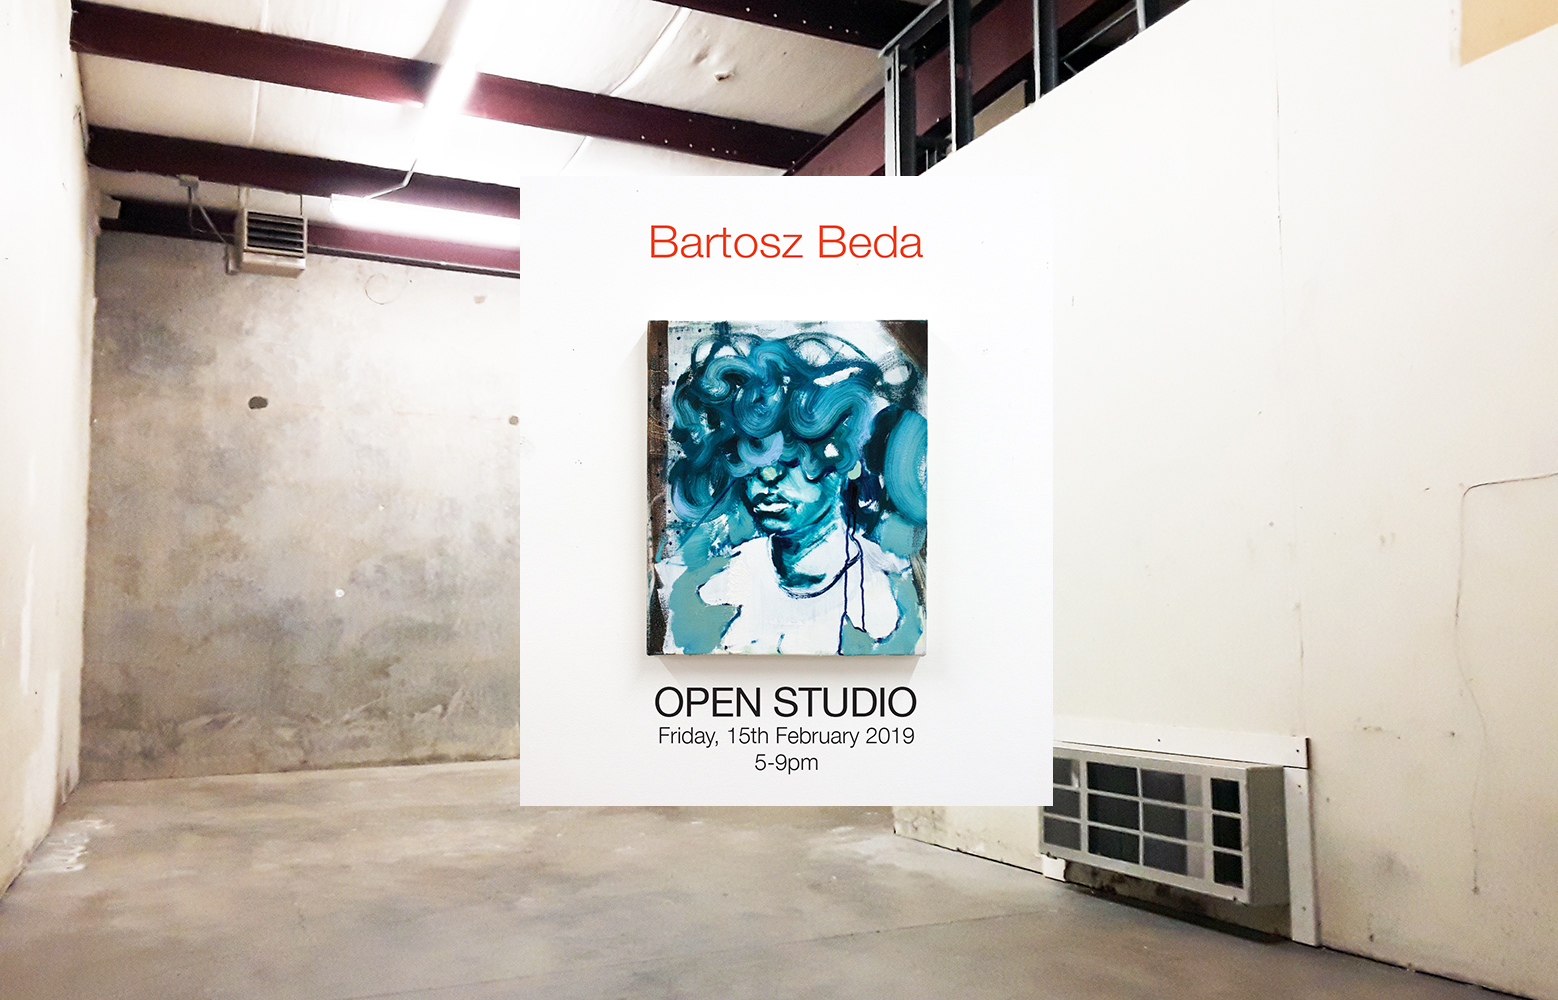 open studio in dallas, bartosz beda artist